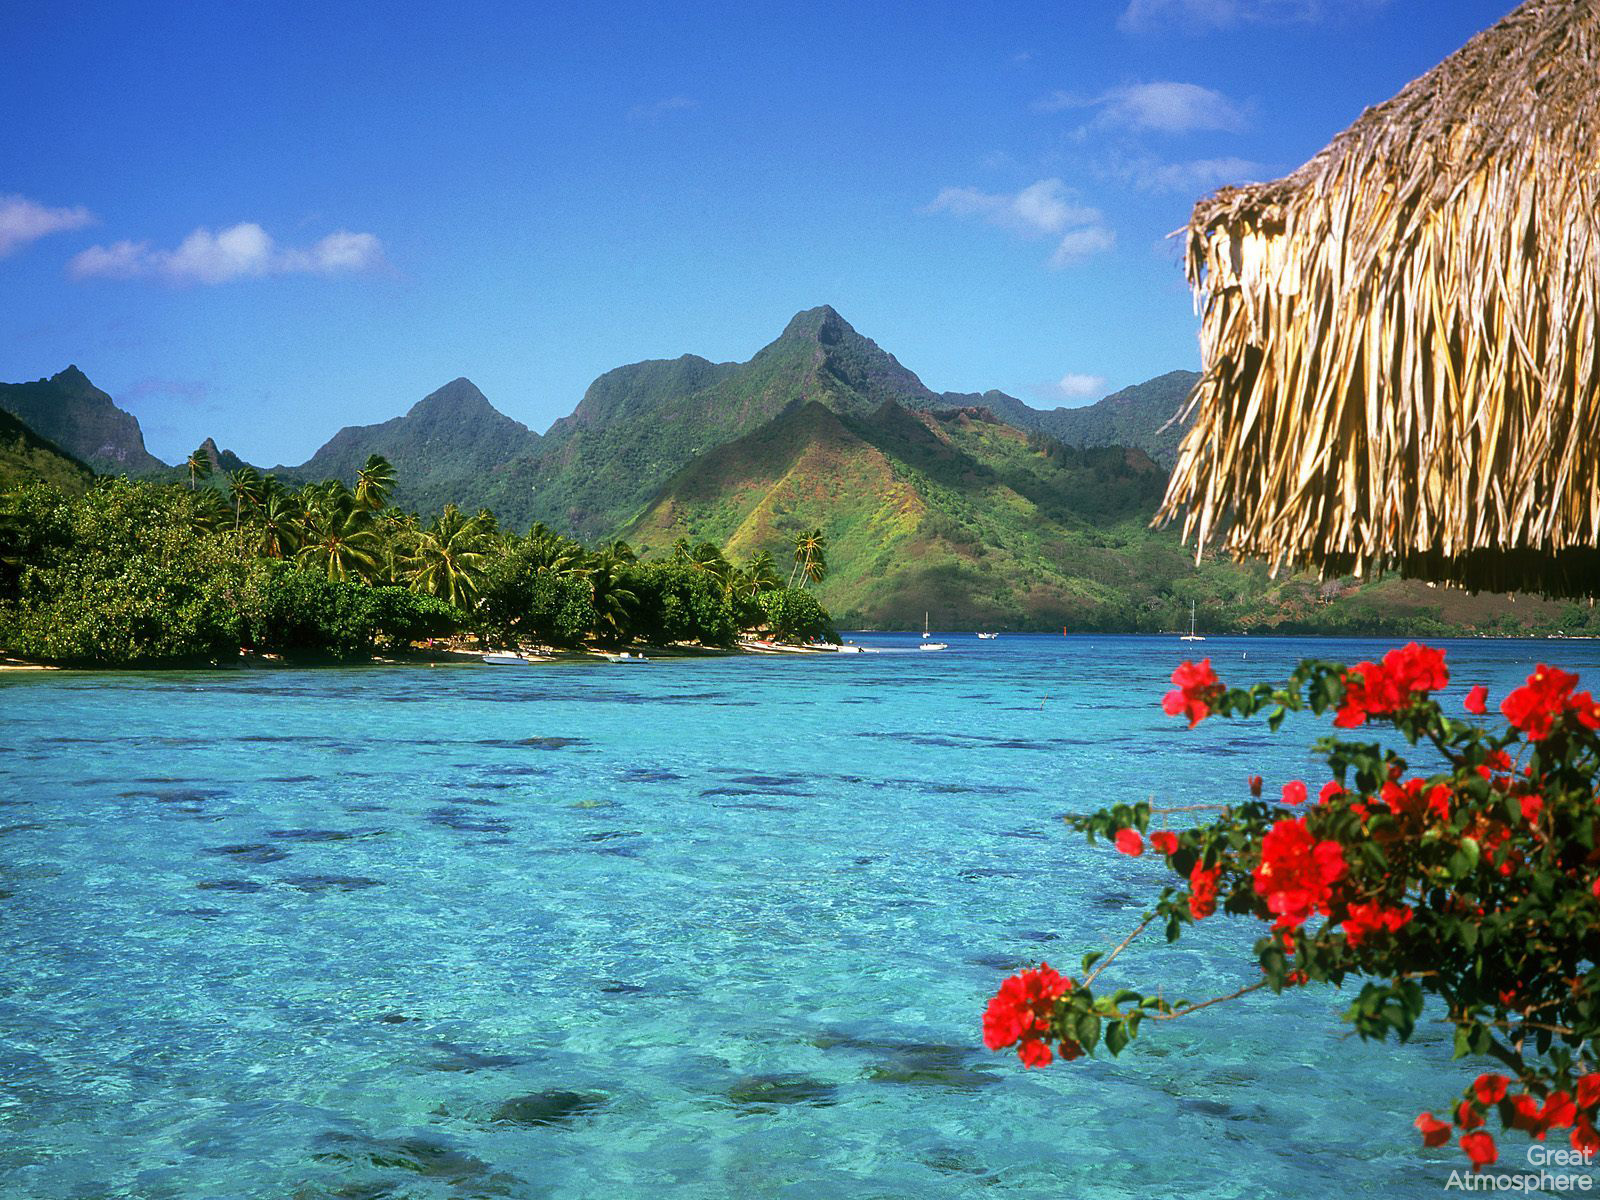 Top Landscape Summer - bora-bora-summer-beach-travel-destinations-2013-beautiful-landscapes-photography-wallpaper-great-atmosphere-250  2018_518343.jpg?w\u003d1600\u0026h\u003d1200